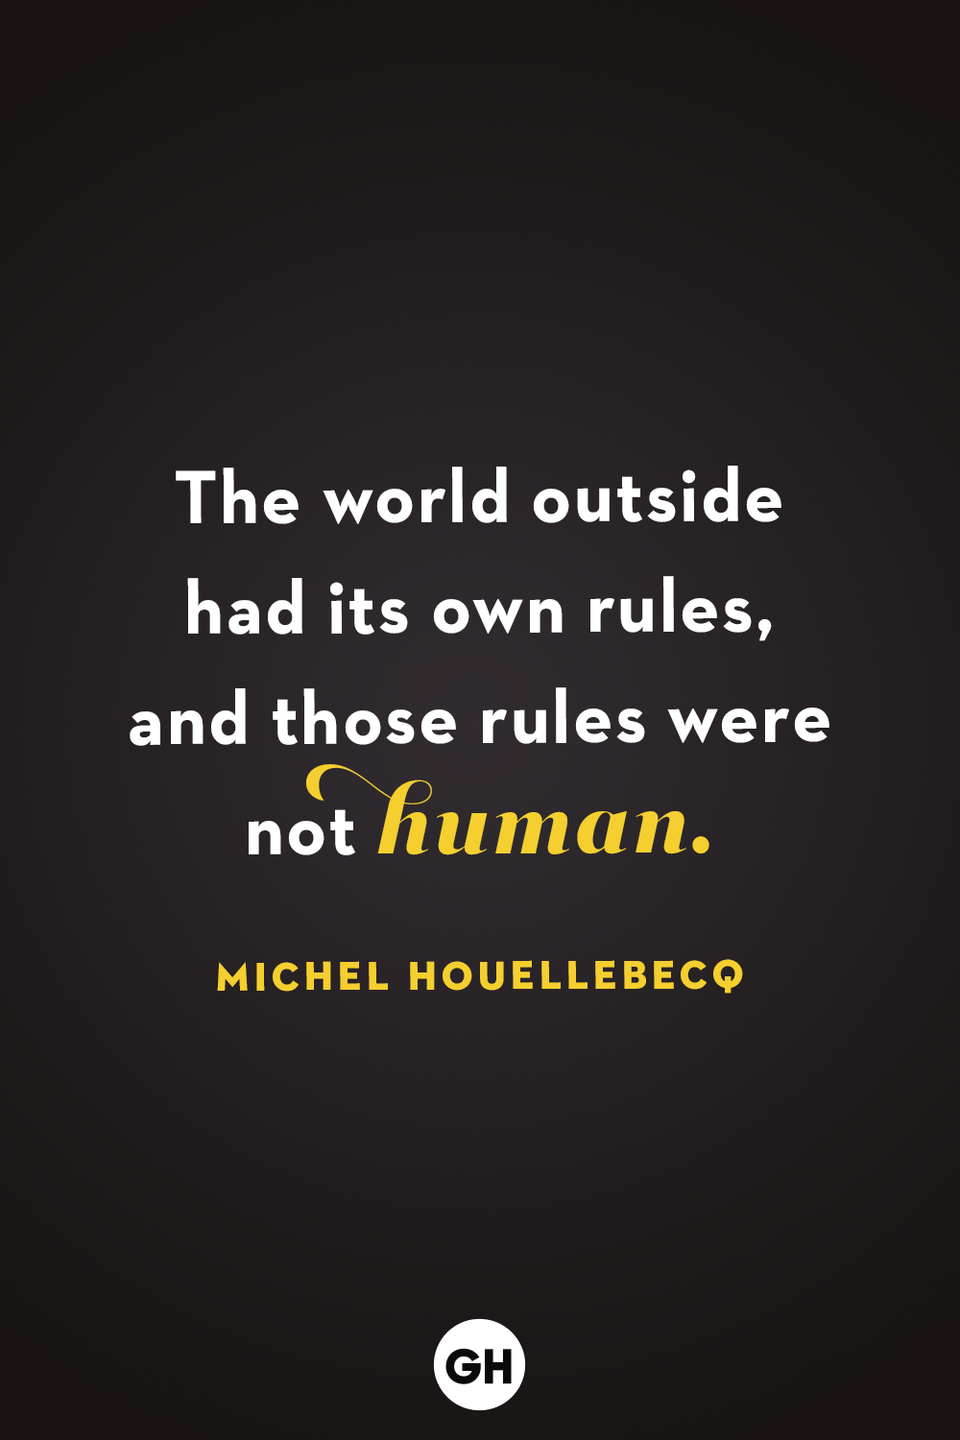 <p>The world outside had its own rules and those rules were not human. </p>